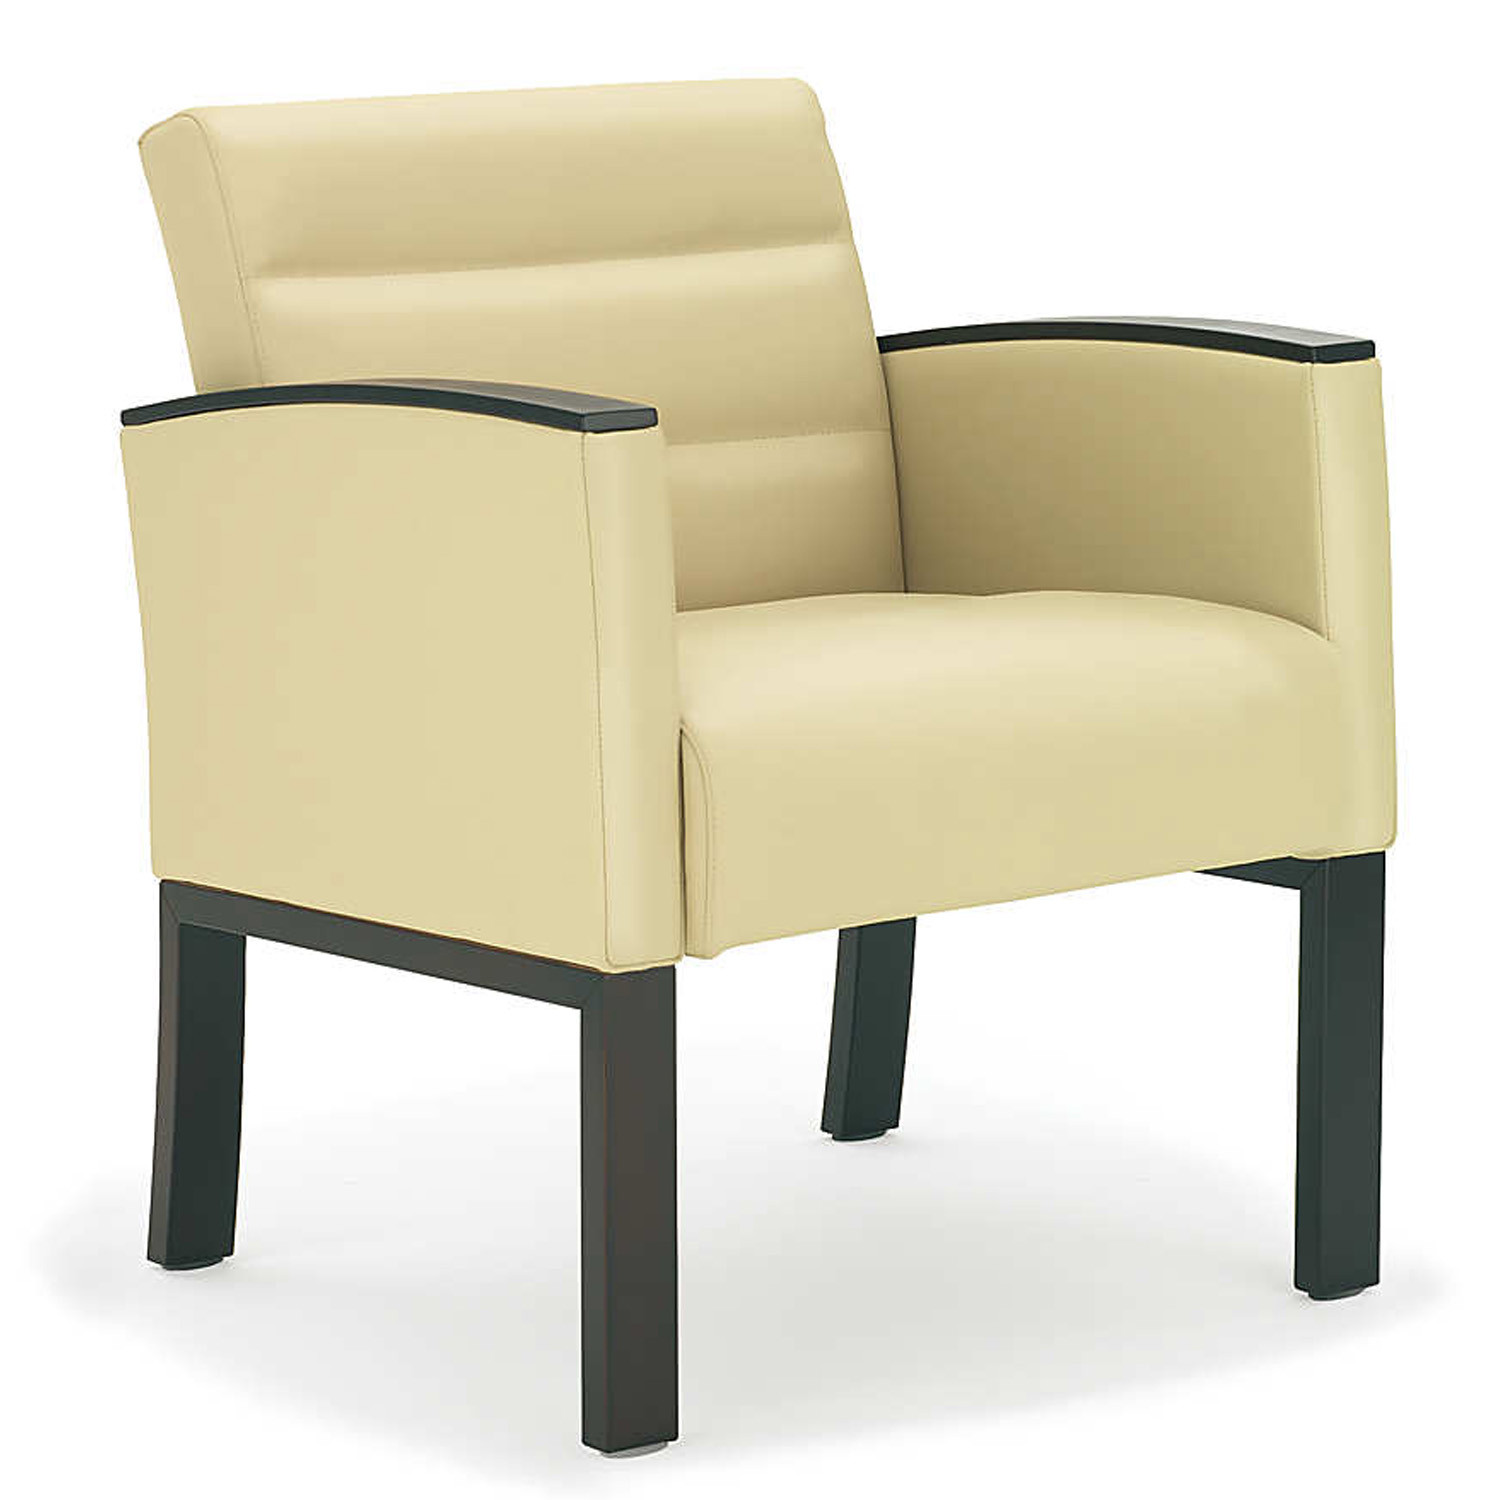 5050 Vega 4-Legged Armchair with upholstered sides and beech armpads